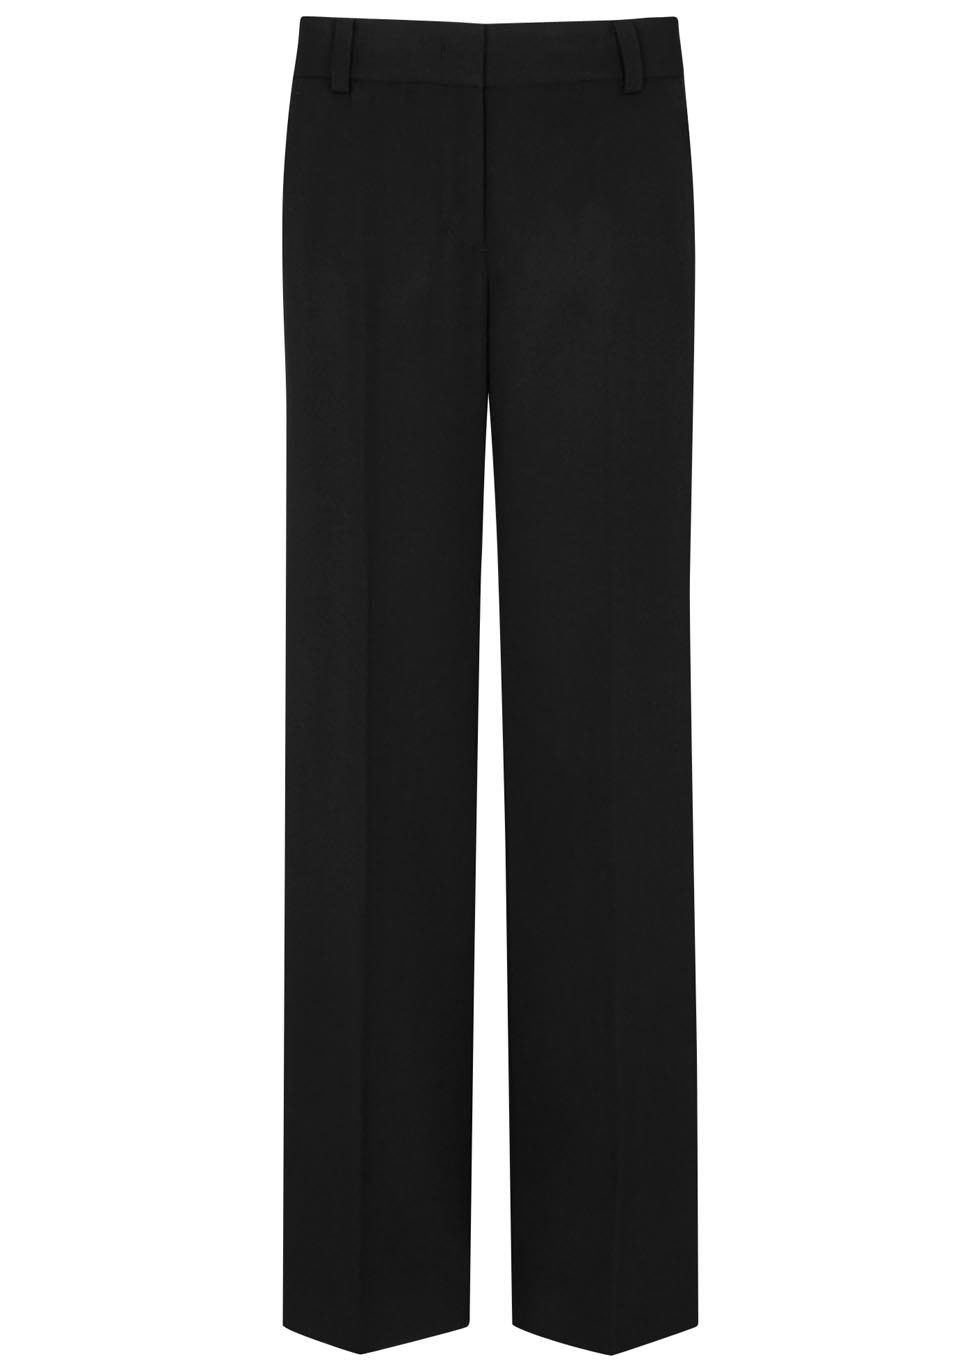 Black Wide Leg Wool Twill Trousers - length: standard; pattern: plain; style: palazzo; waist: mid/regular rise; predominant colour: black; occasions: work; fibres: wool - 100%; fit: wide leg; pattern type: fabric; texture group: other - light to midweight; season: s/s 2016; wardrobe: basic